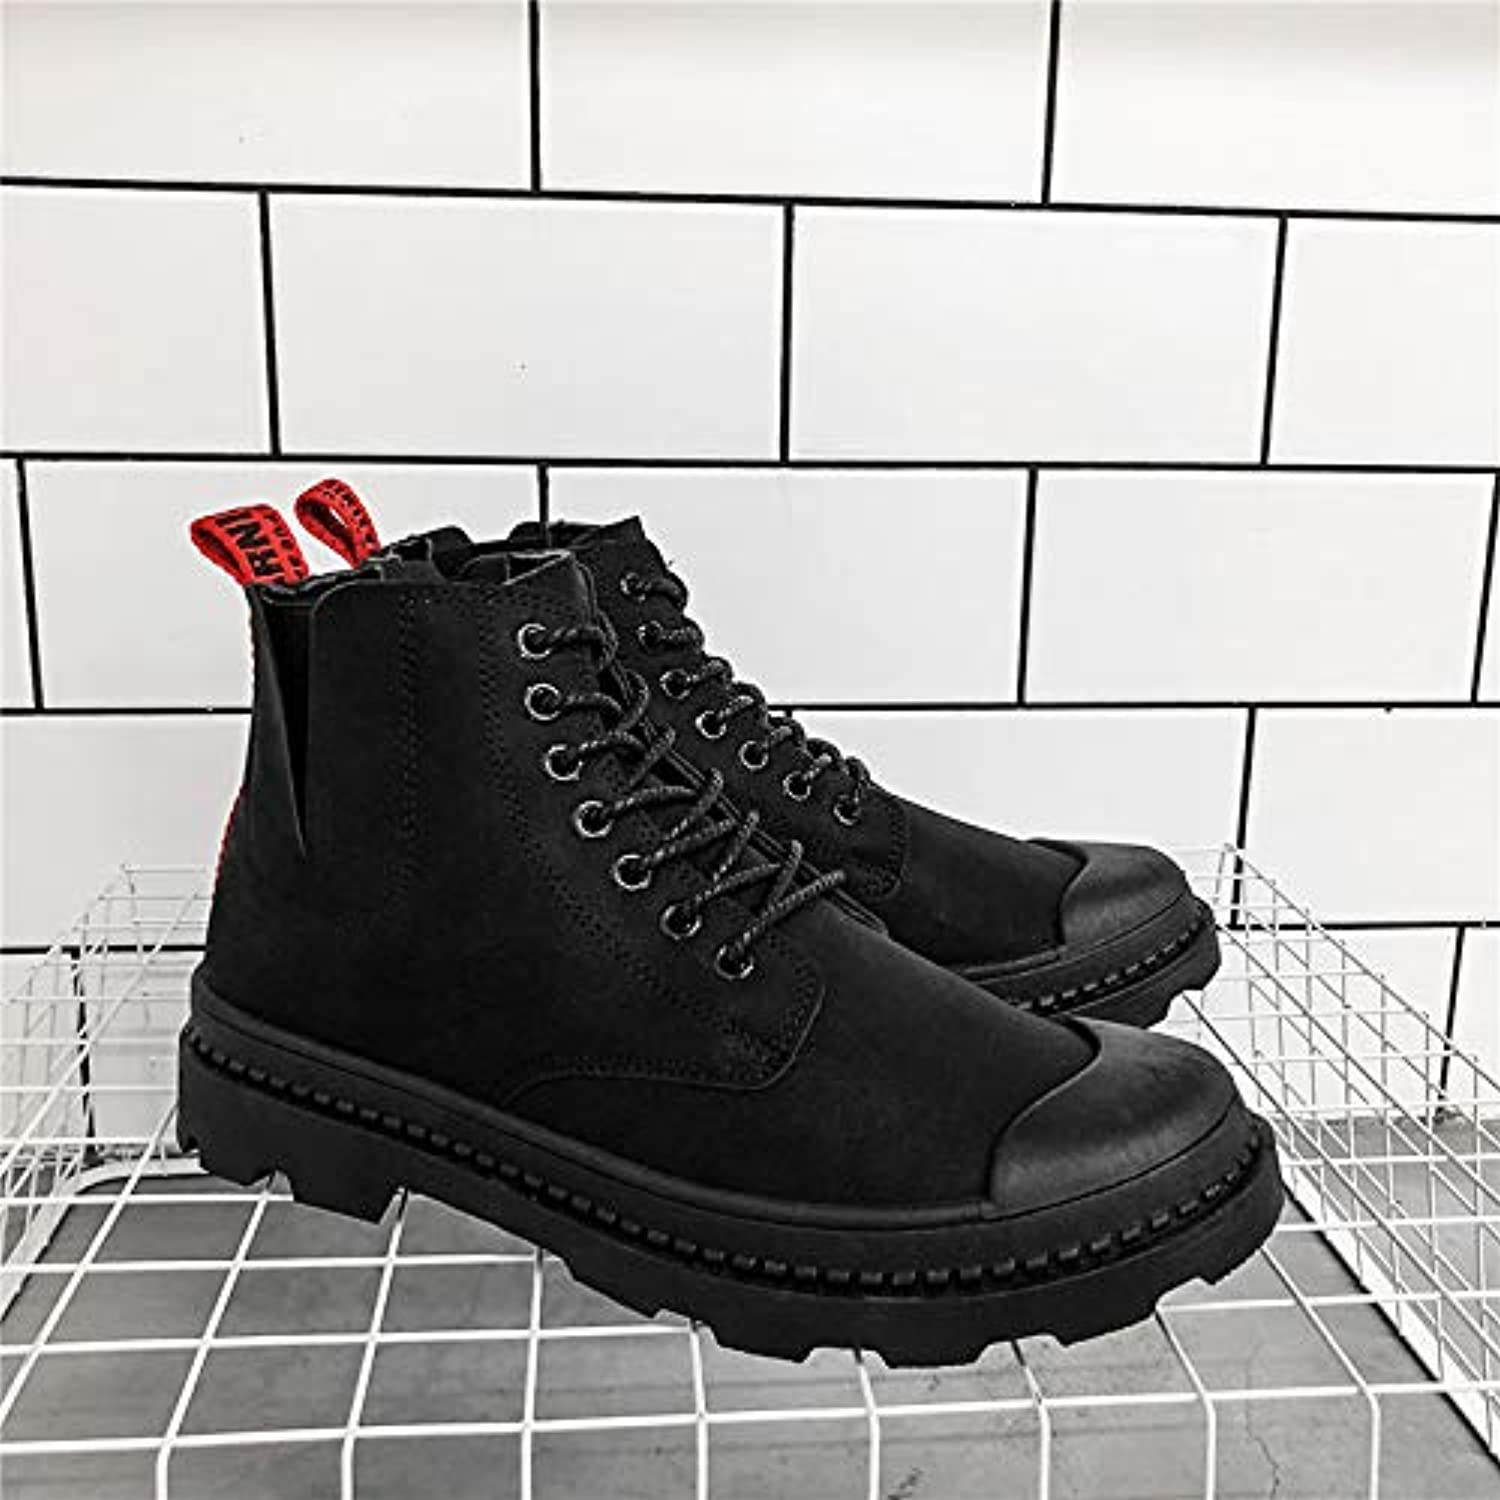 LOVDRAM Boots Men's Martin Boots In The Men'S shoes Autumn And Winter Casual shoes Men'S Desert Tooling shoes Boots